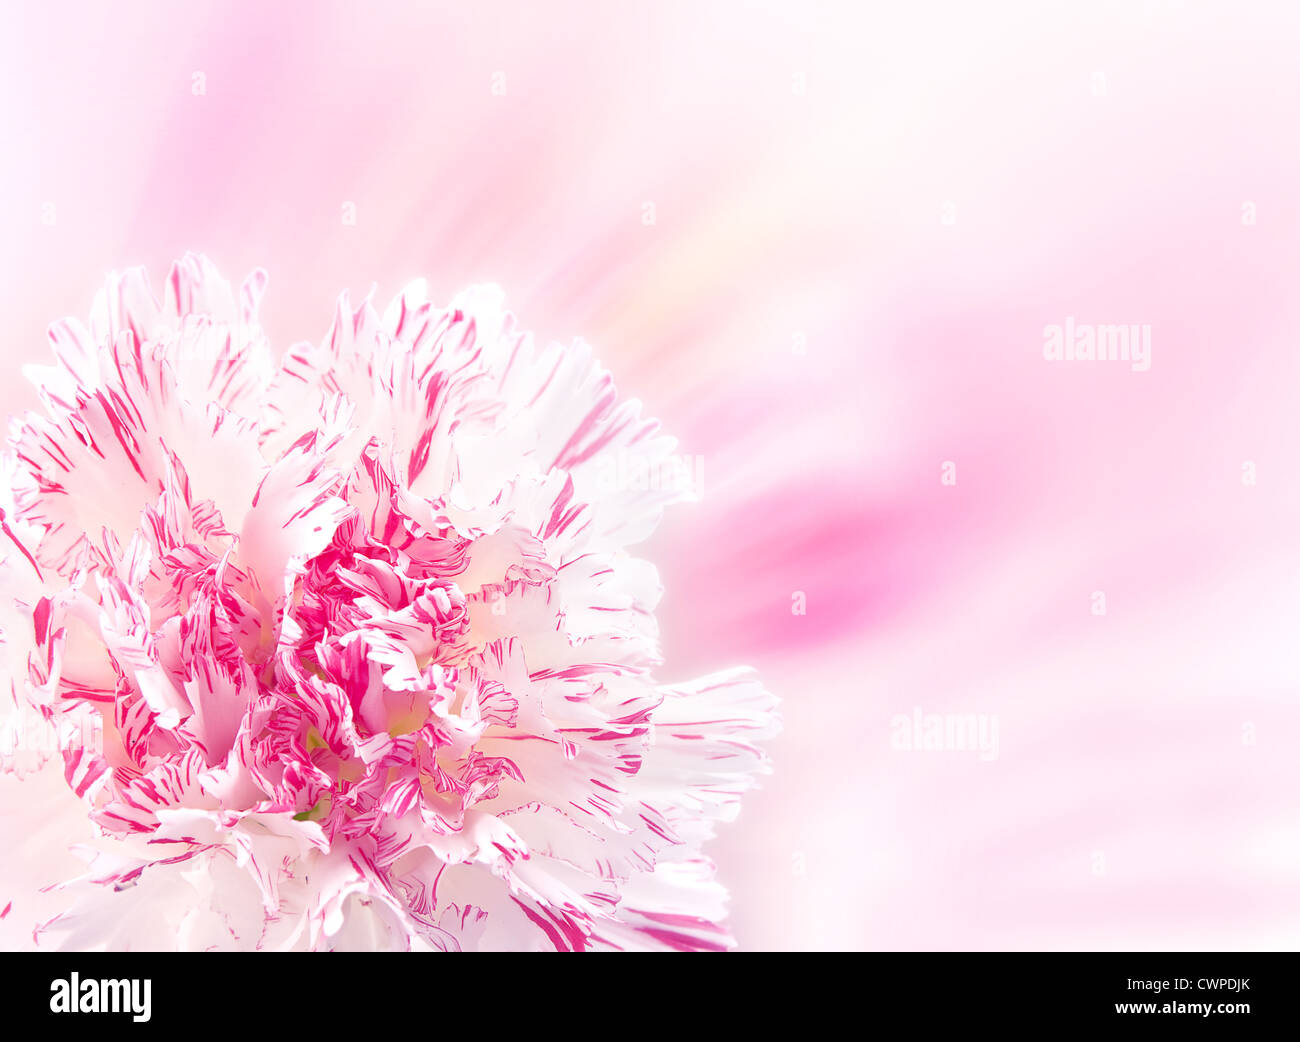 Pink carnation flower closeup background - Stock Image